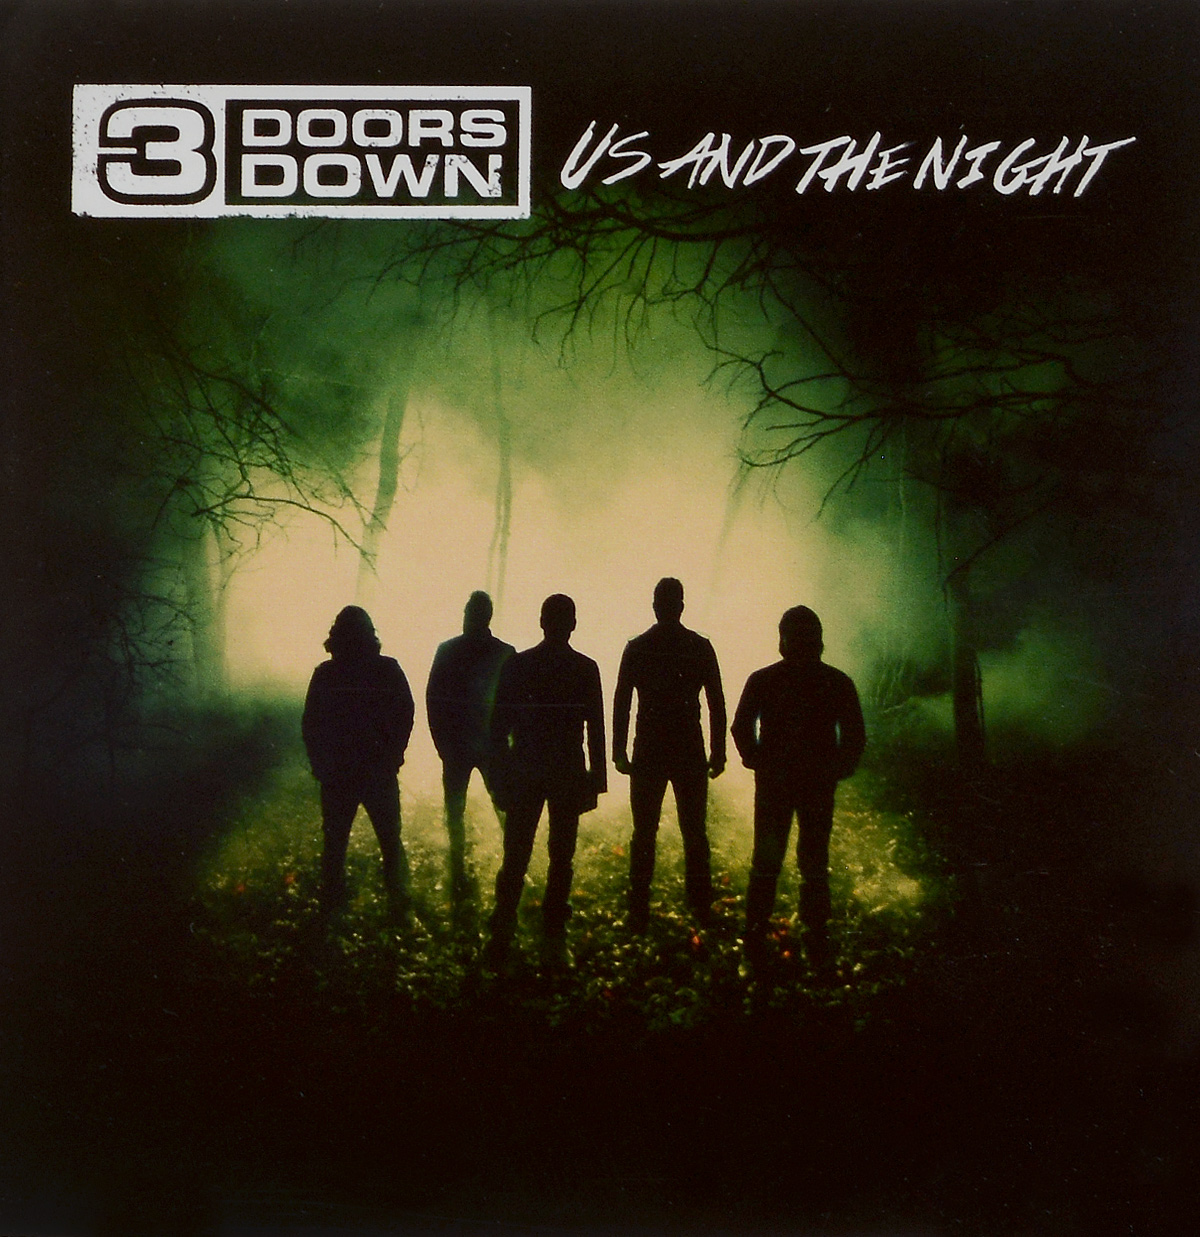 3 Doors Down 3 Doors Down. Us And The Night down and dirty